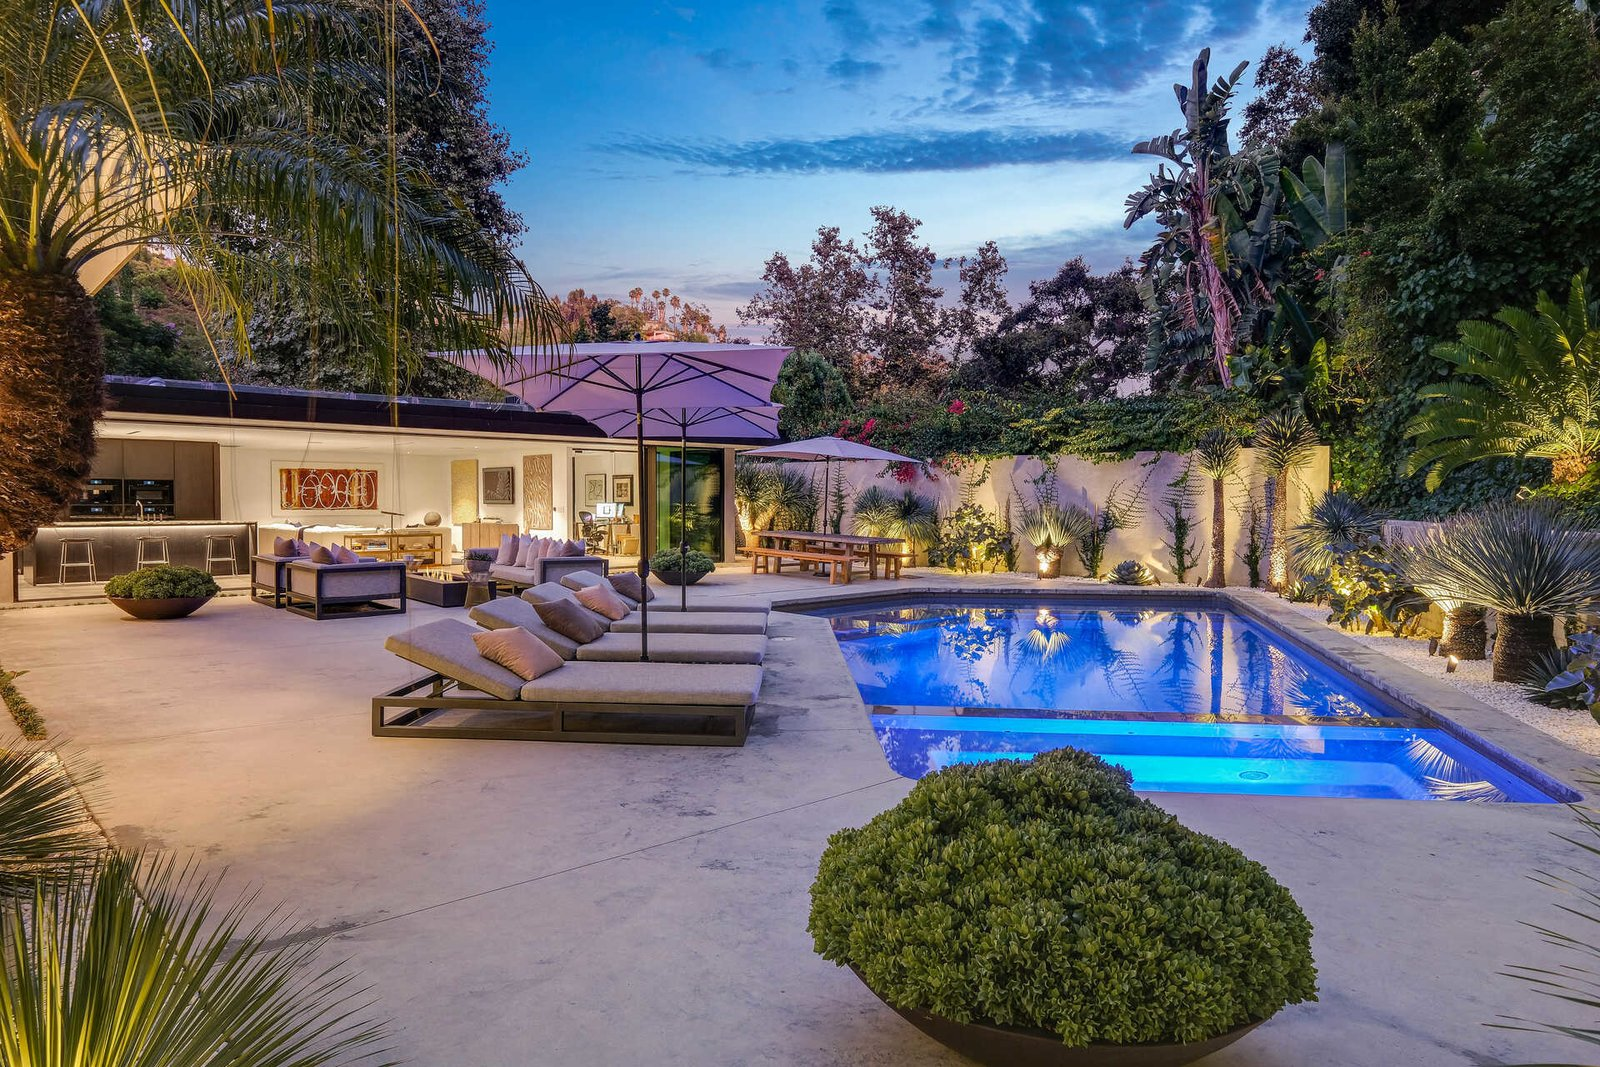 Outdoor, Stone Patio, Porch, Deck, Back Yard, Large Patio, Porch, Deck, Landscape Lighting, Shrubs, Large Pools, Tubs, Shower, Trees, and Concrete Patio, Porch, Deck  A Midcentury Modern Oasis in Bel Air